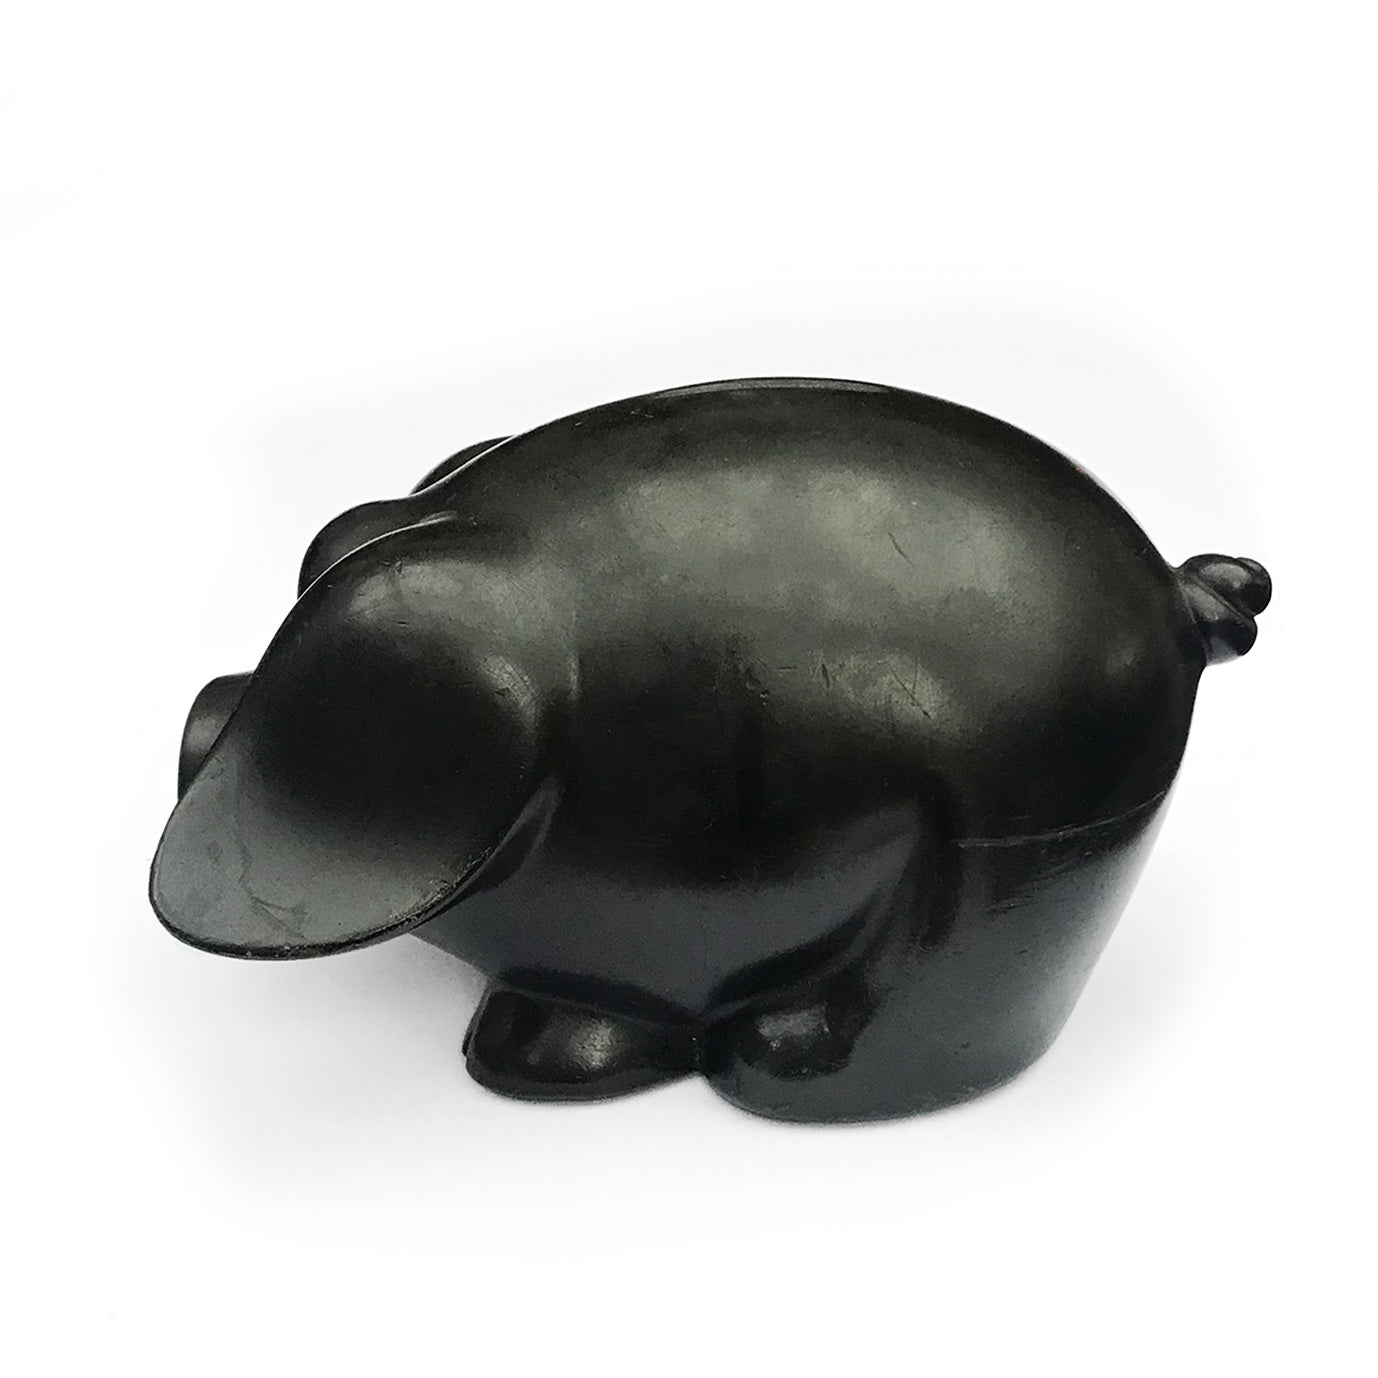 Lovely vintage black piggy bank - SHOP NOW - www.intovintage.co.uk